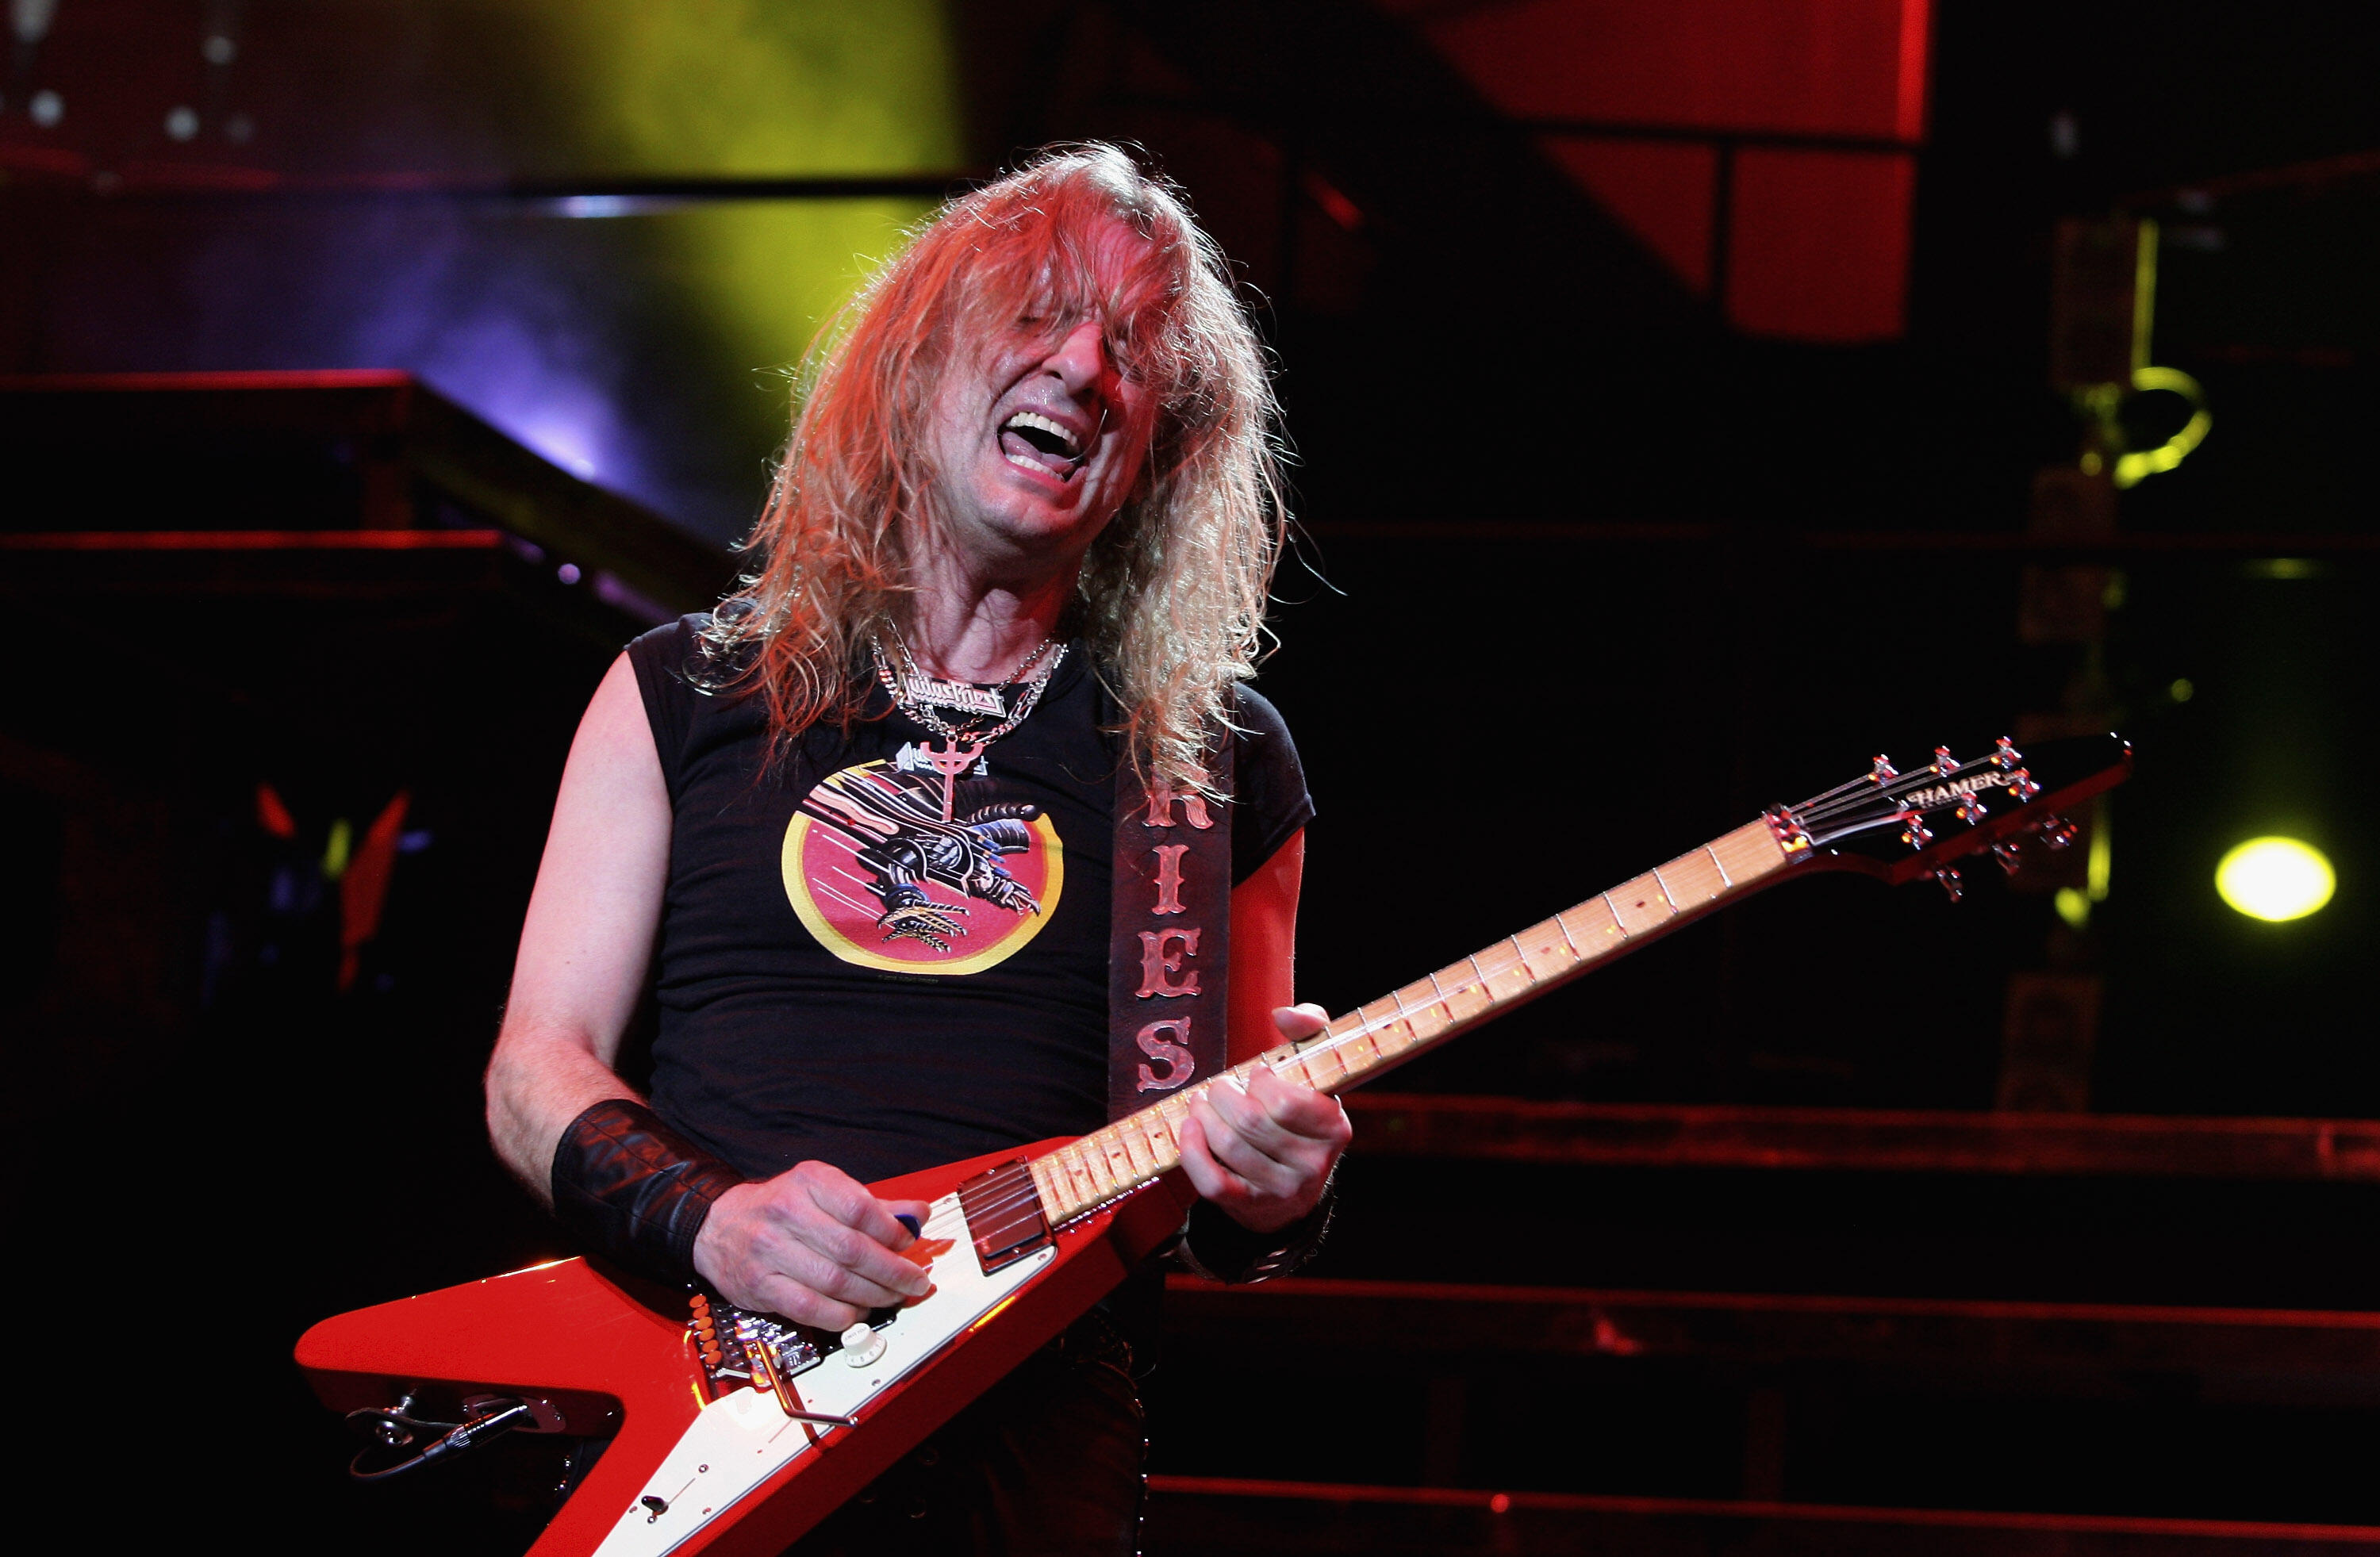 K.K. Downing Forms New Band With Former Members Of Judas Priest | 94.5 The Buzz